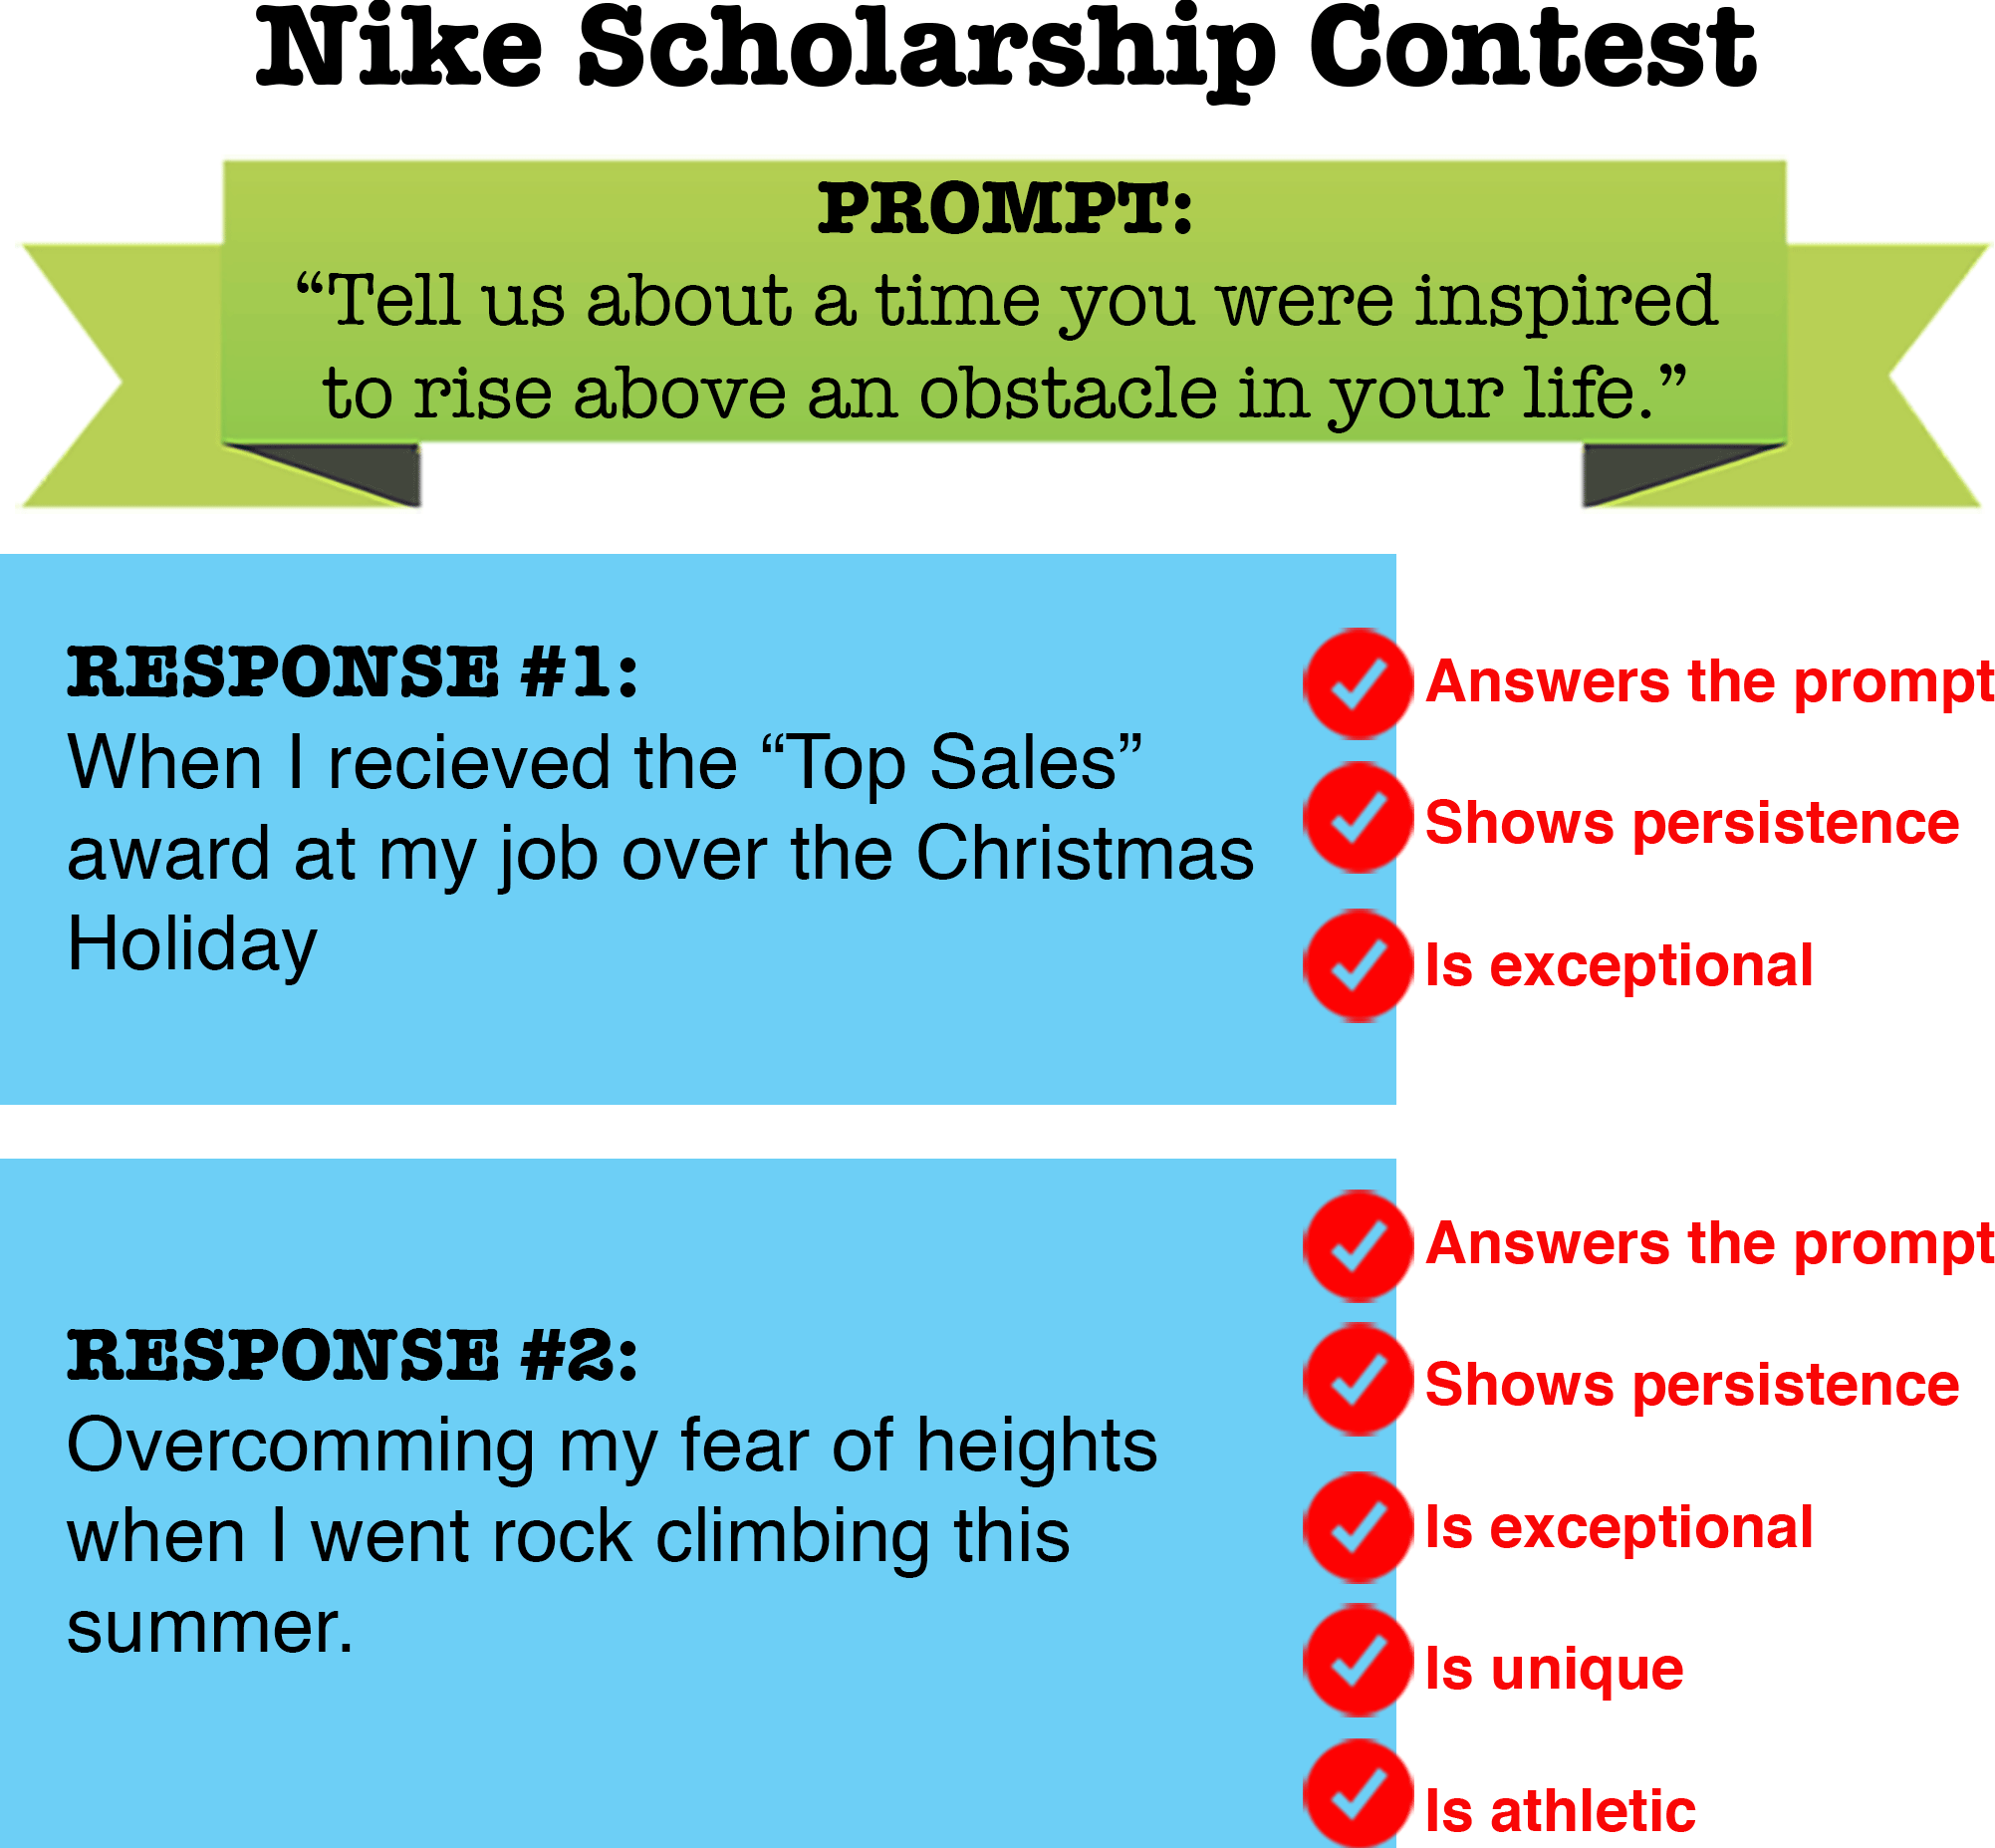 003 Scholarship Essay Contests For College Students Contest Scholarships Nikes High School Middle Stupendous Seniors Full